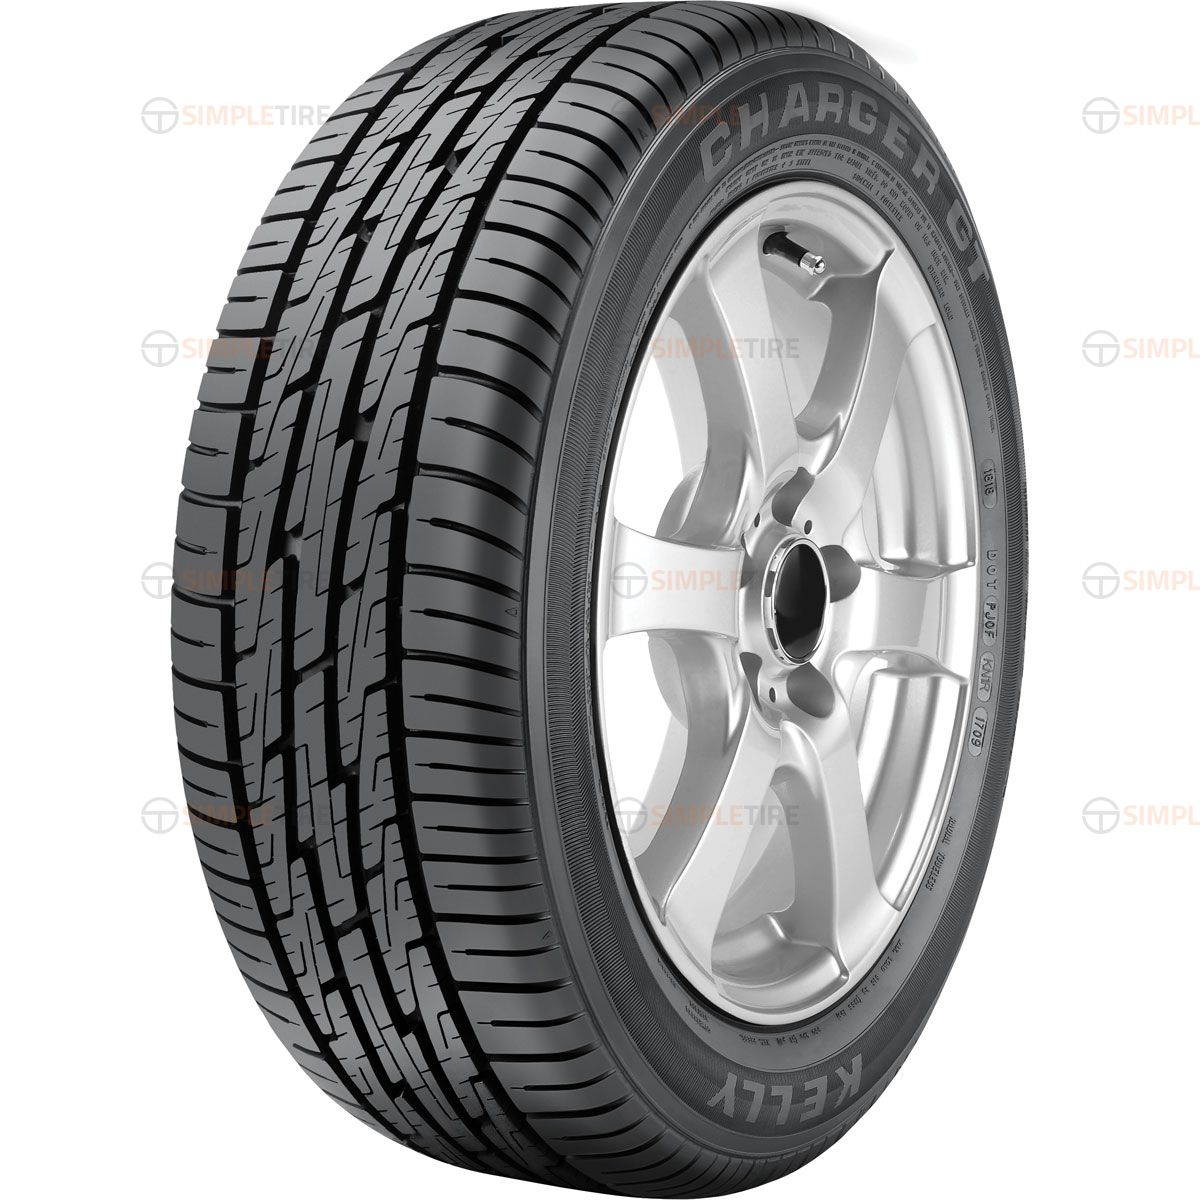 Kelly Tires Charger P205/60R-15 356501730